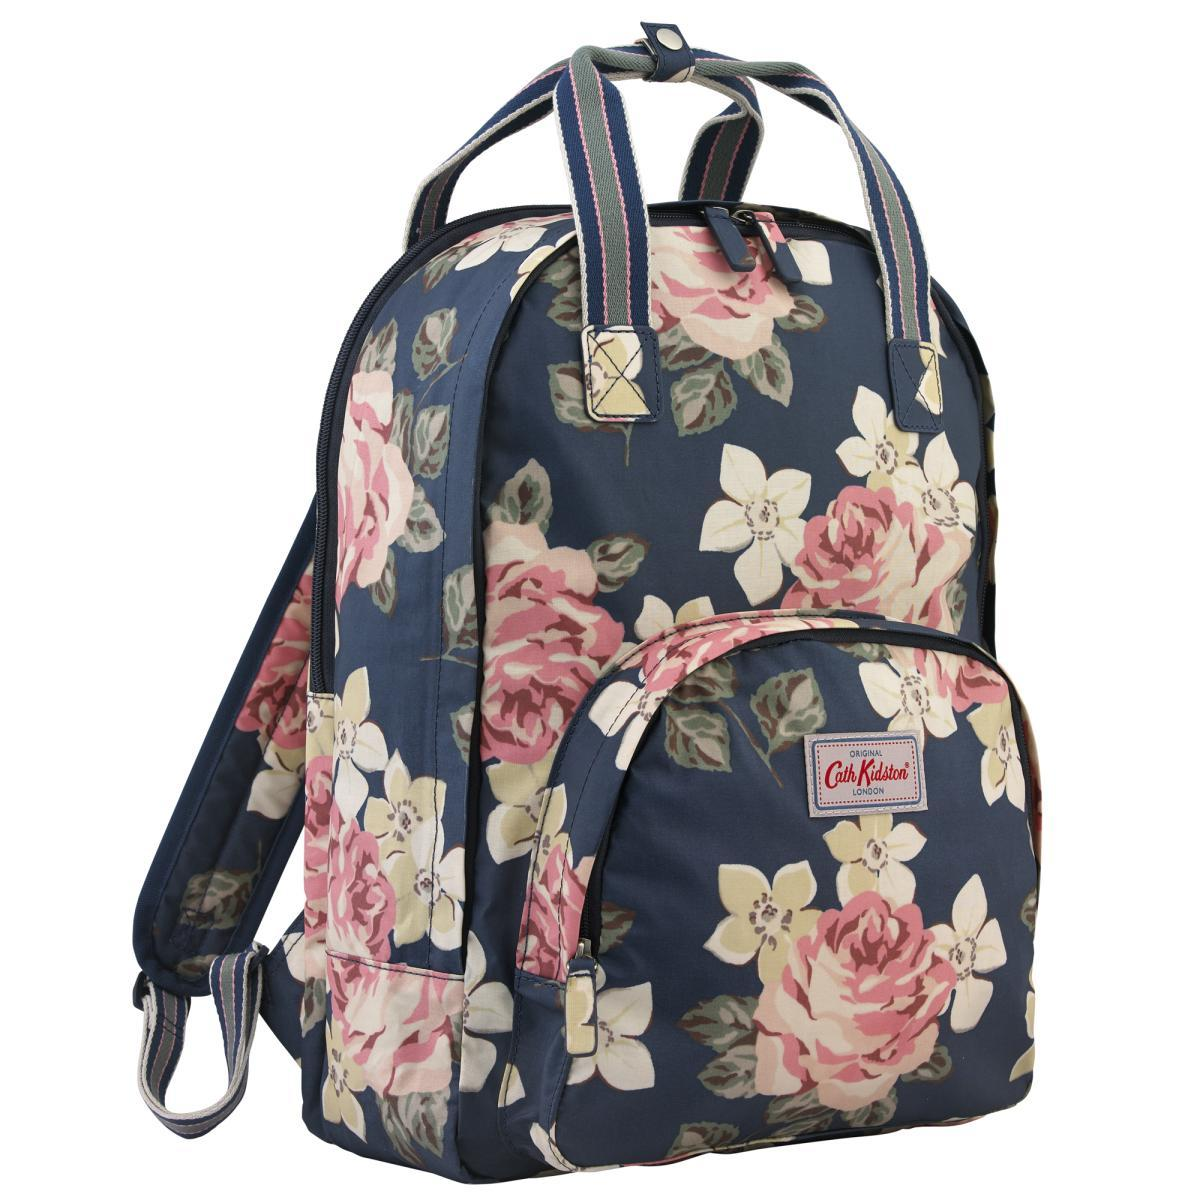 Cath Kidston Spray Flower Zipped Handbag Hitam Smart4k